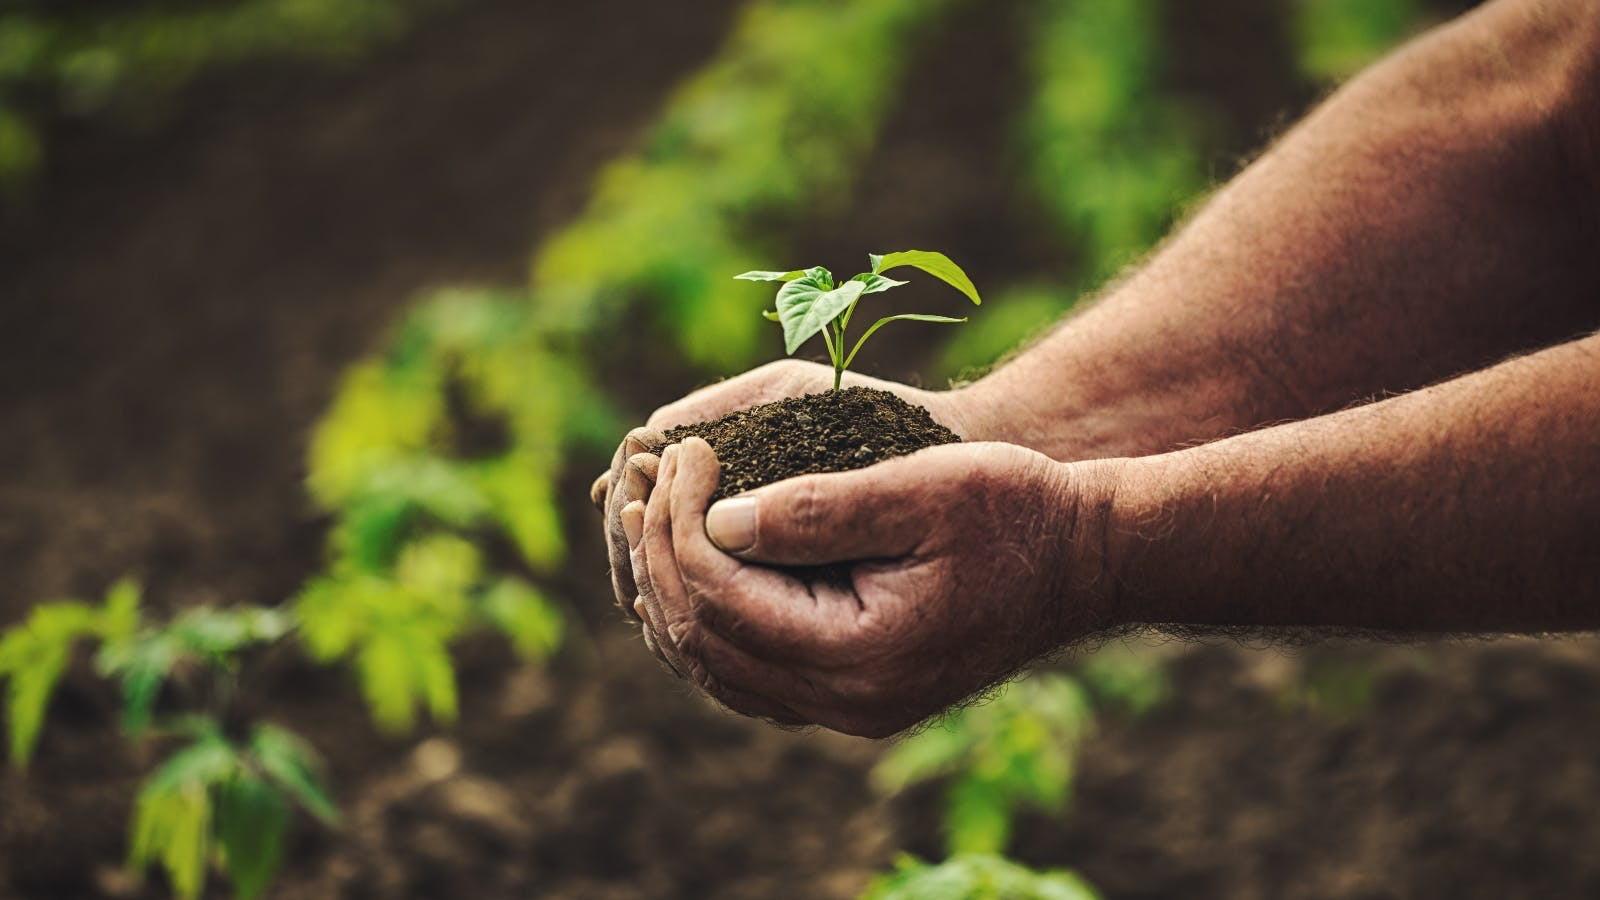 hands holding soil and a plant